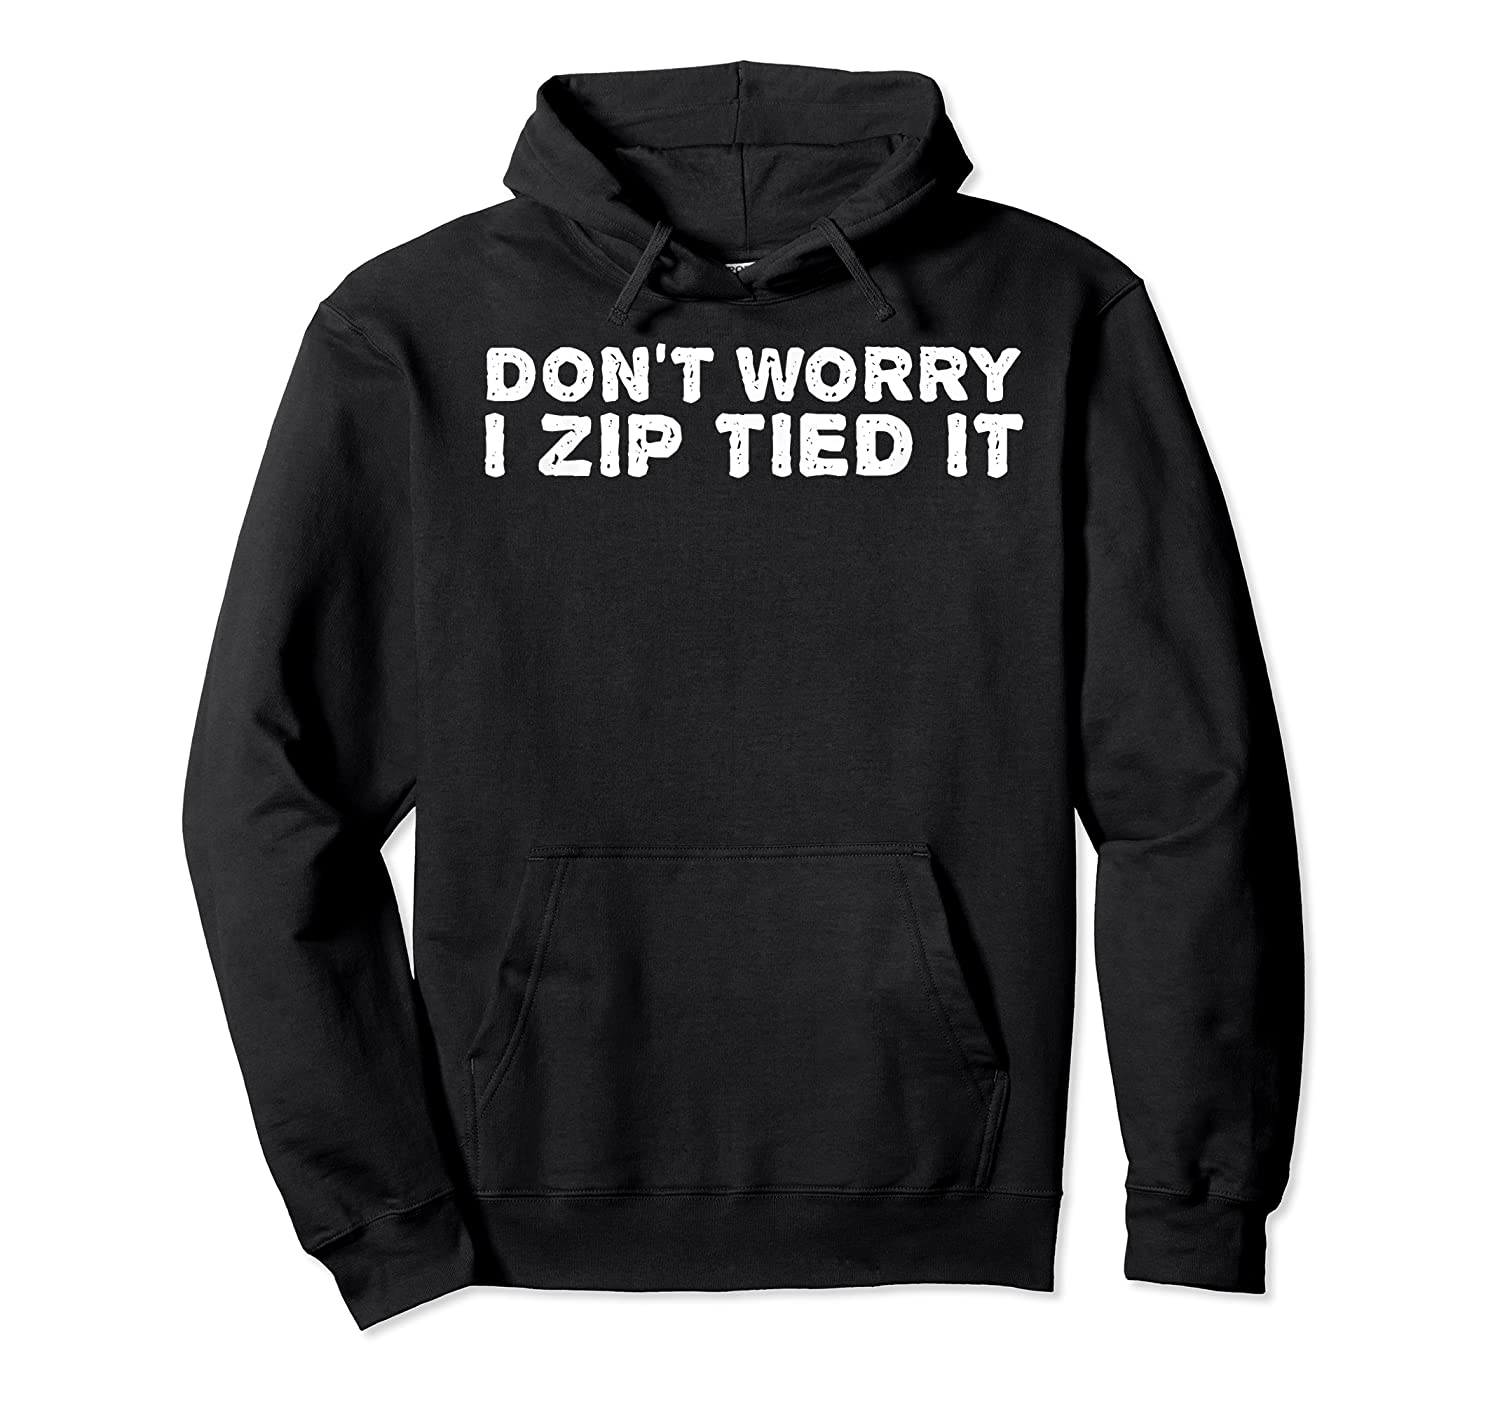 Don't Worry I Zip Tied I Funny Cable Tie Gift Idea Shirts Unisex Pullover Hoodie